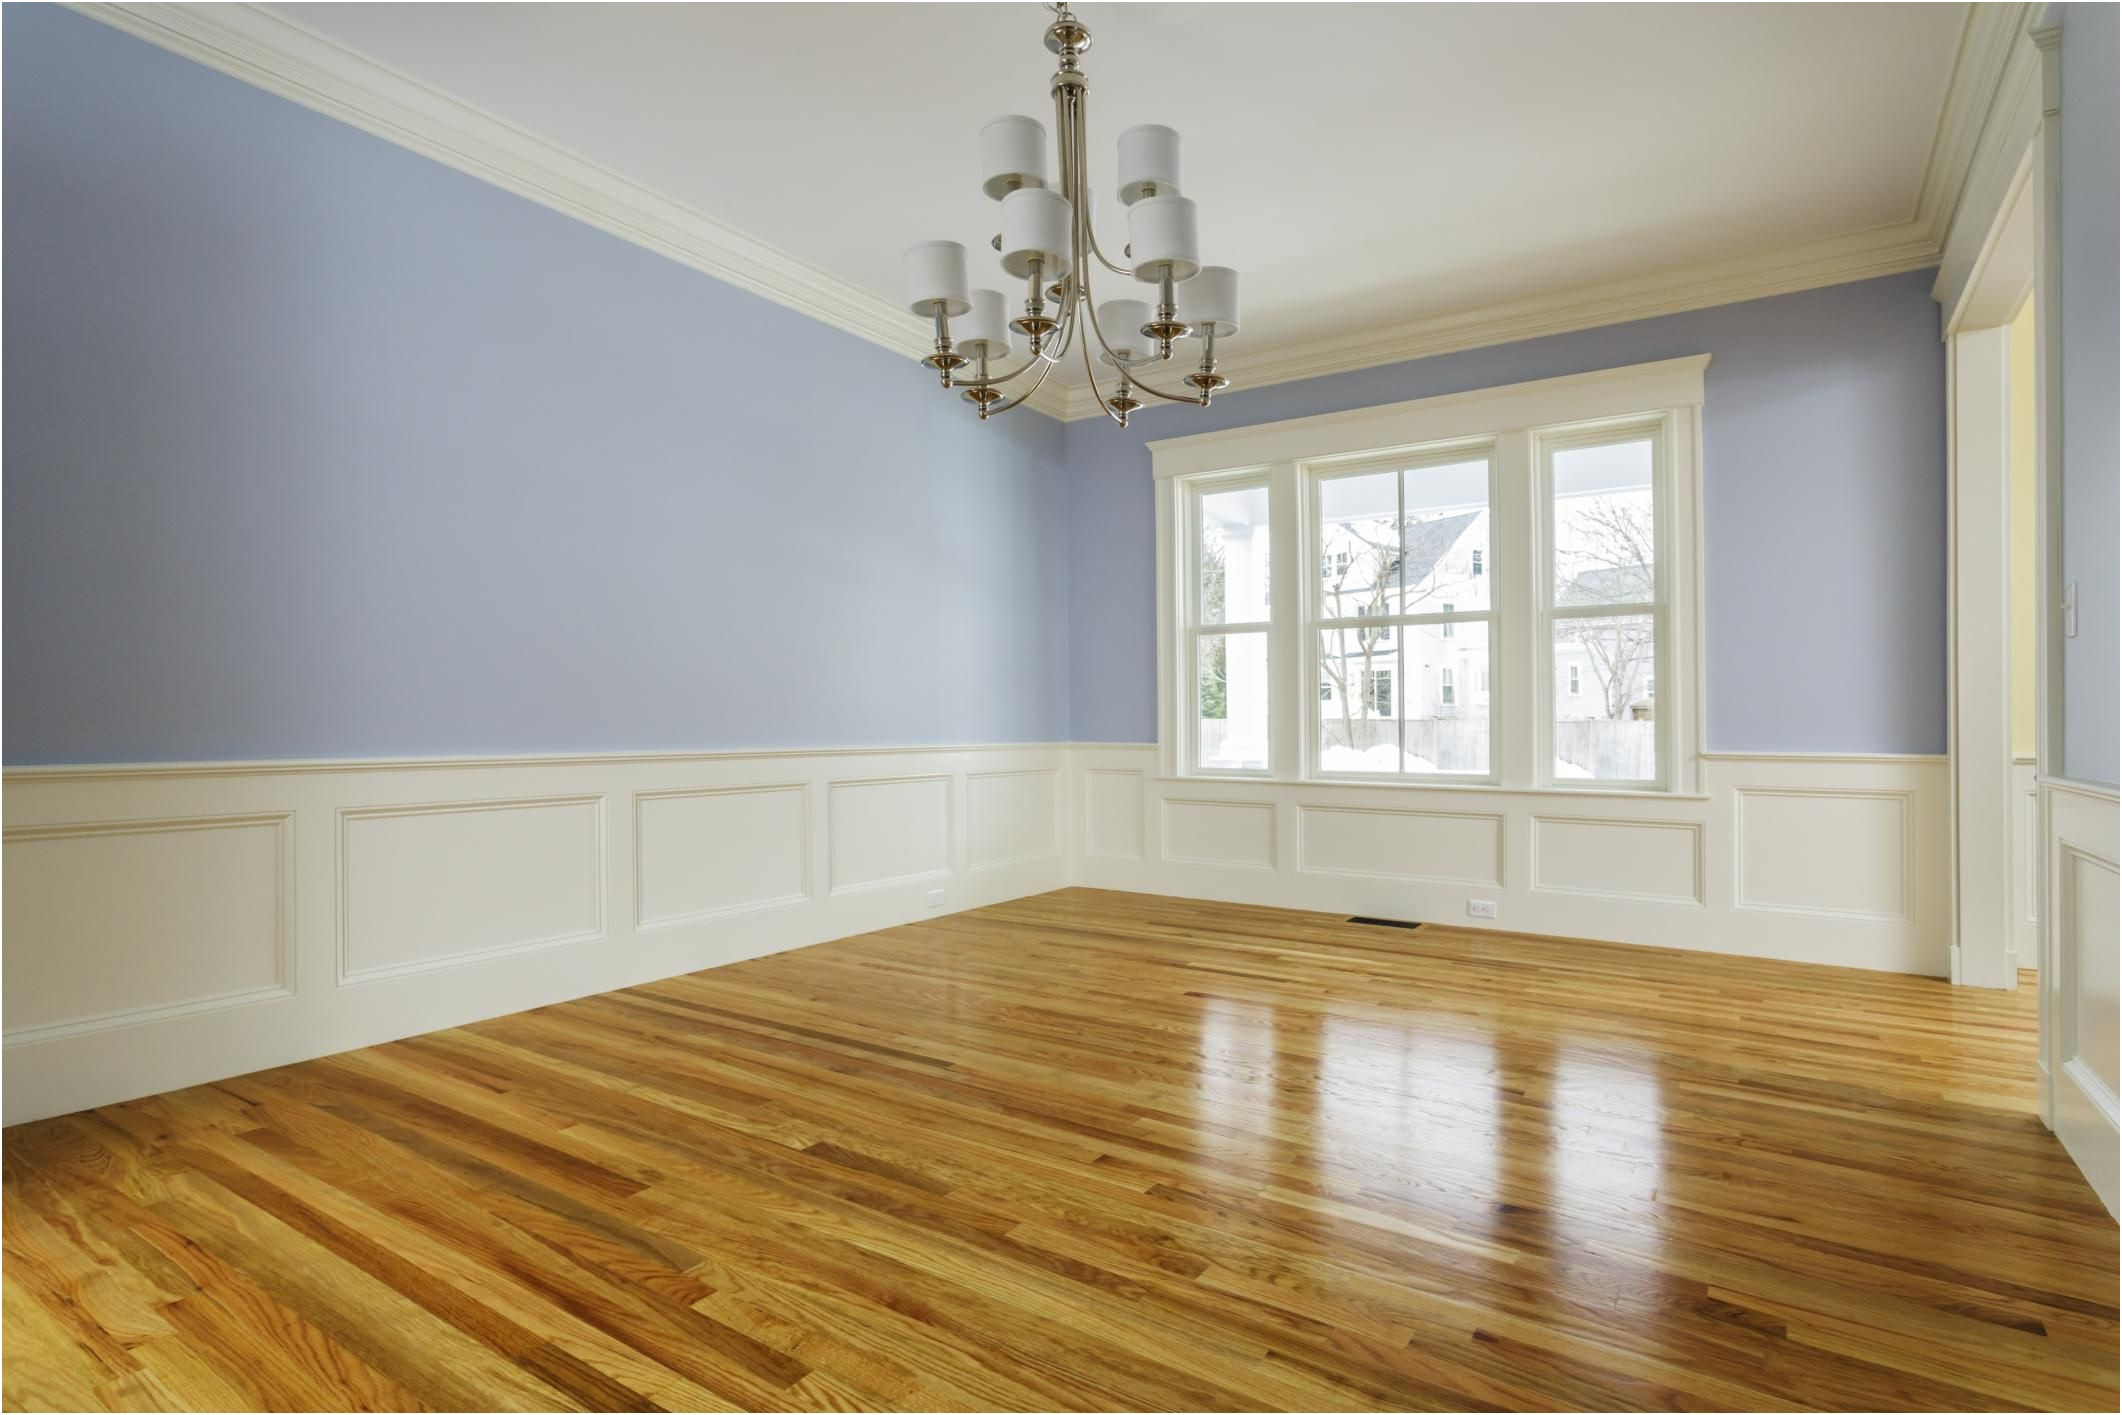 vinyl plank flooring vs engineered hardwood of how to lay flooring new engineered vinyl plank flooring called for gallery of how to lay flooring new engineered vinyl plank flooring called classico teak from shaw